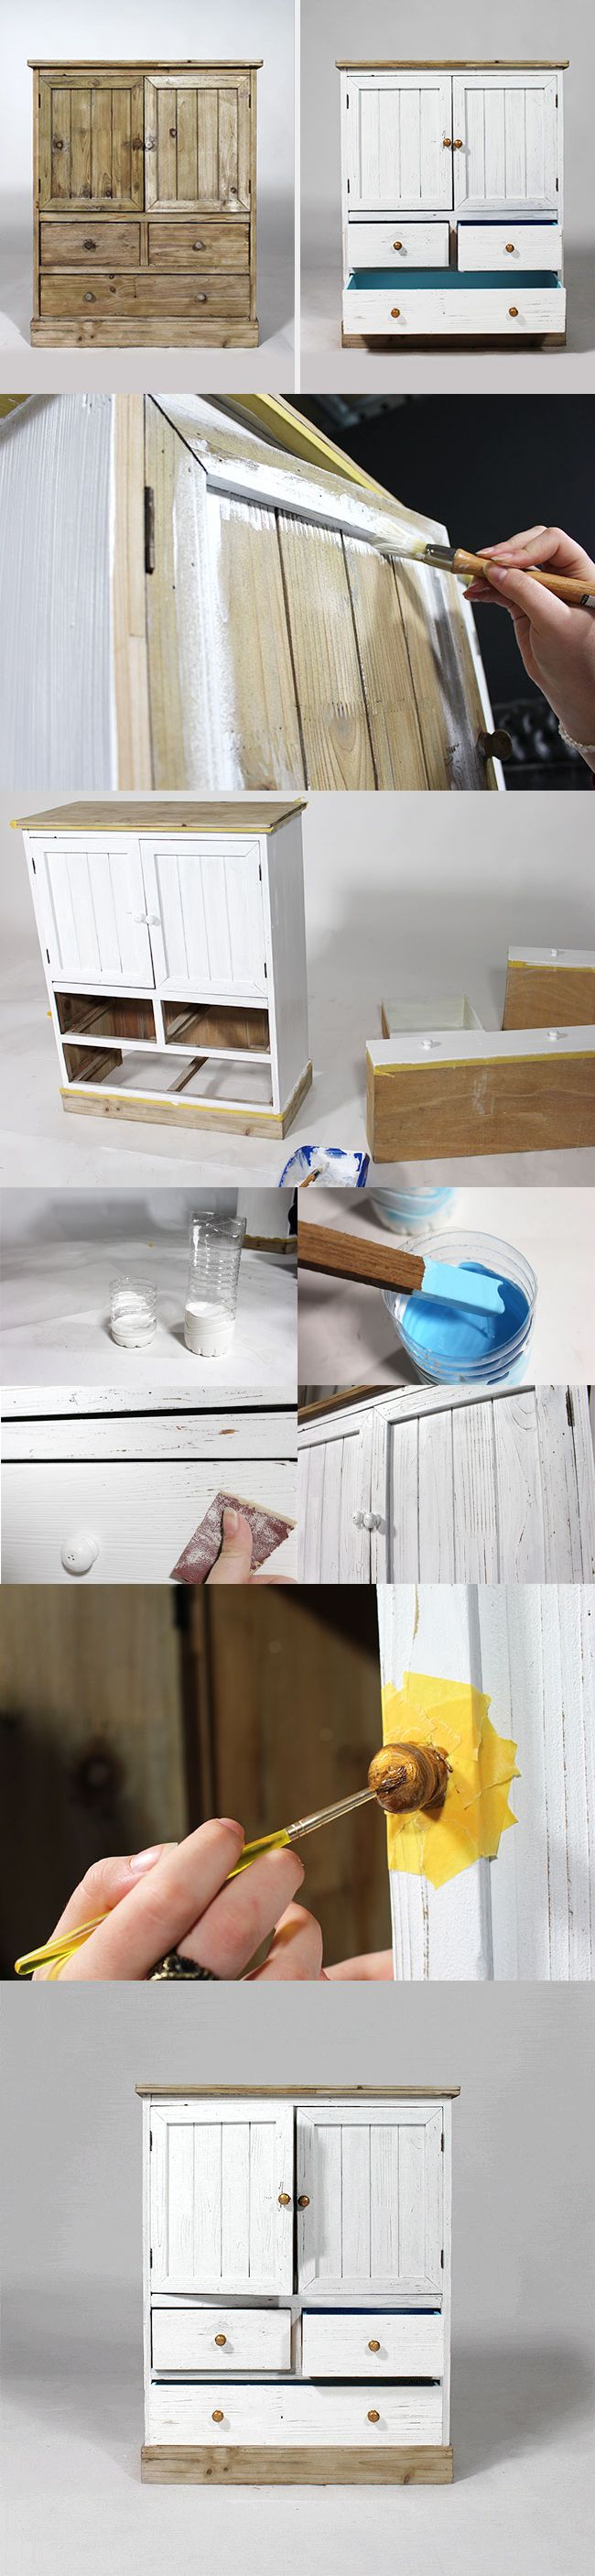 Diy customiser un meuble en bois bricolage for Customiser un meuble en pin